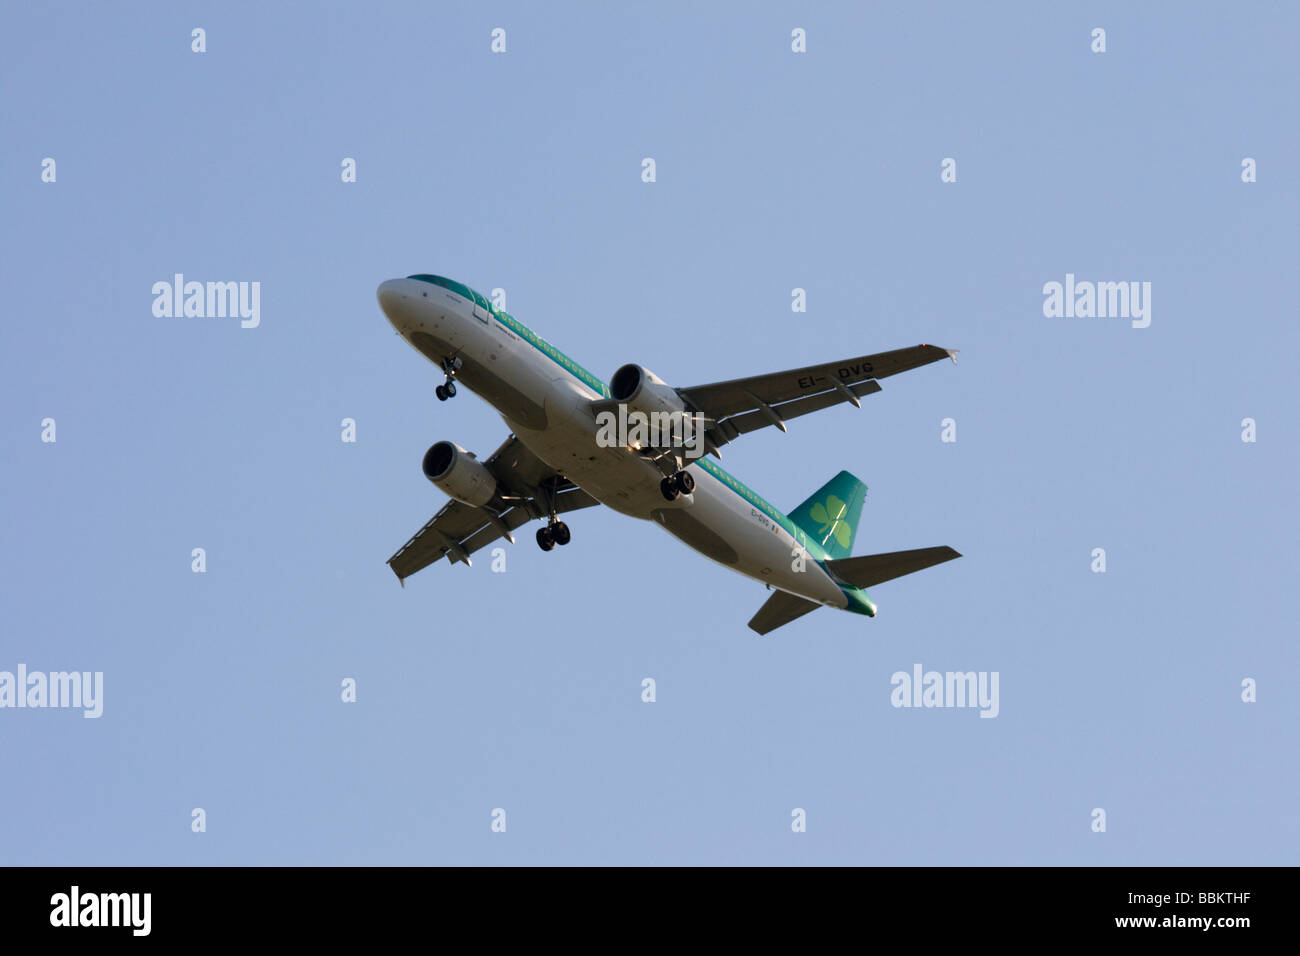 Commercial jet airliner, Aerlingus, Airbus A320 - Stock Image